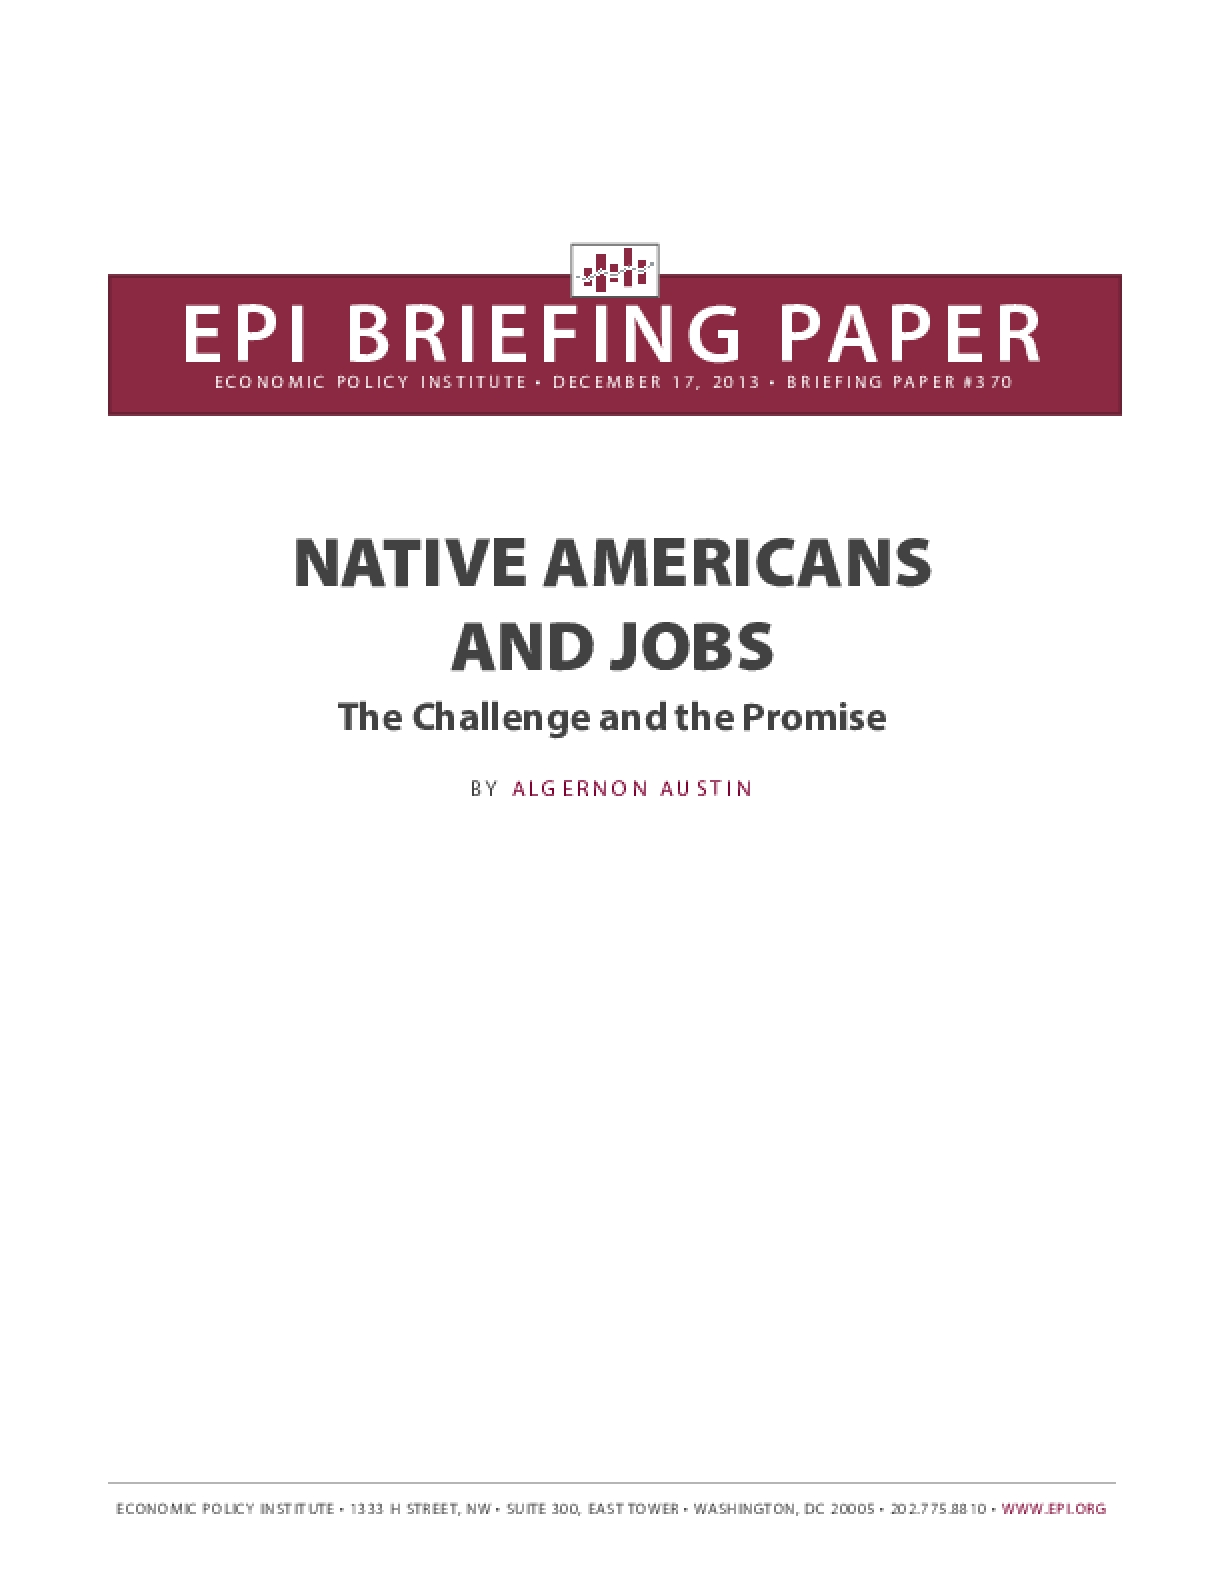 NATIVE AMERICANS AND JOBS - The Challenge and the Promise